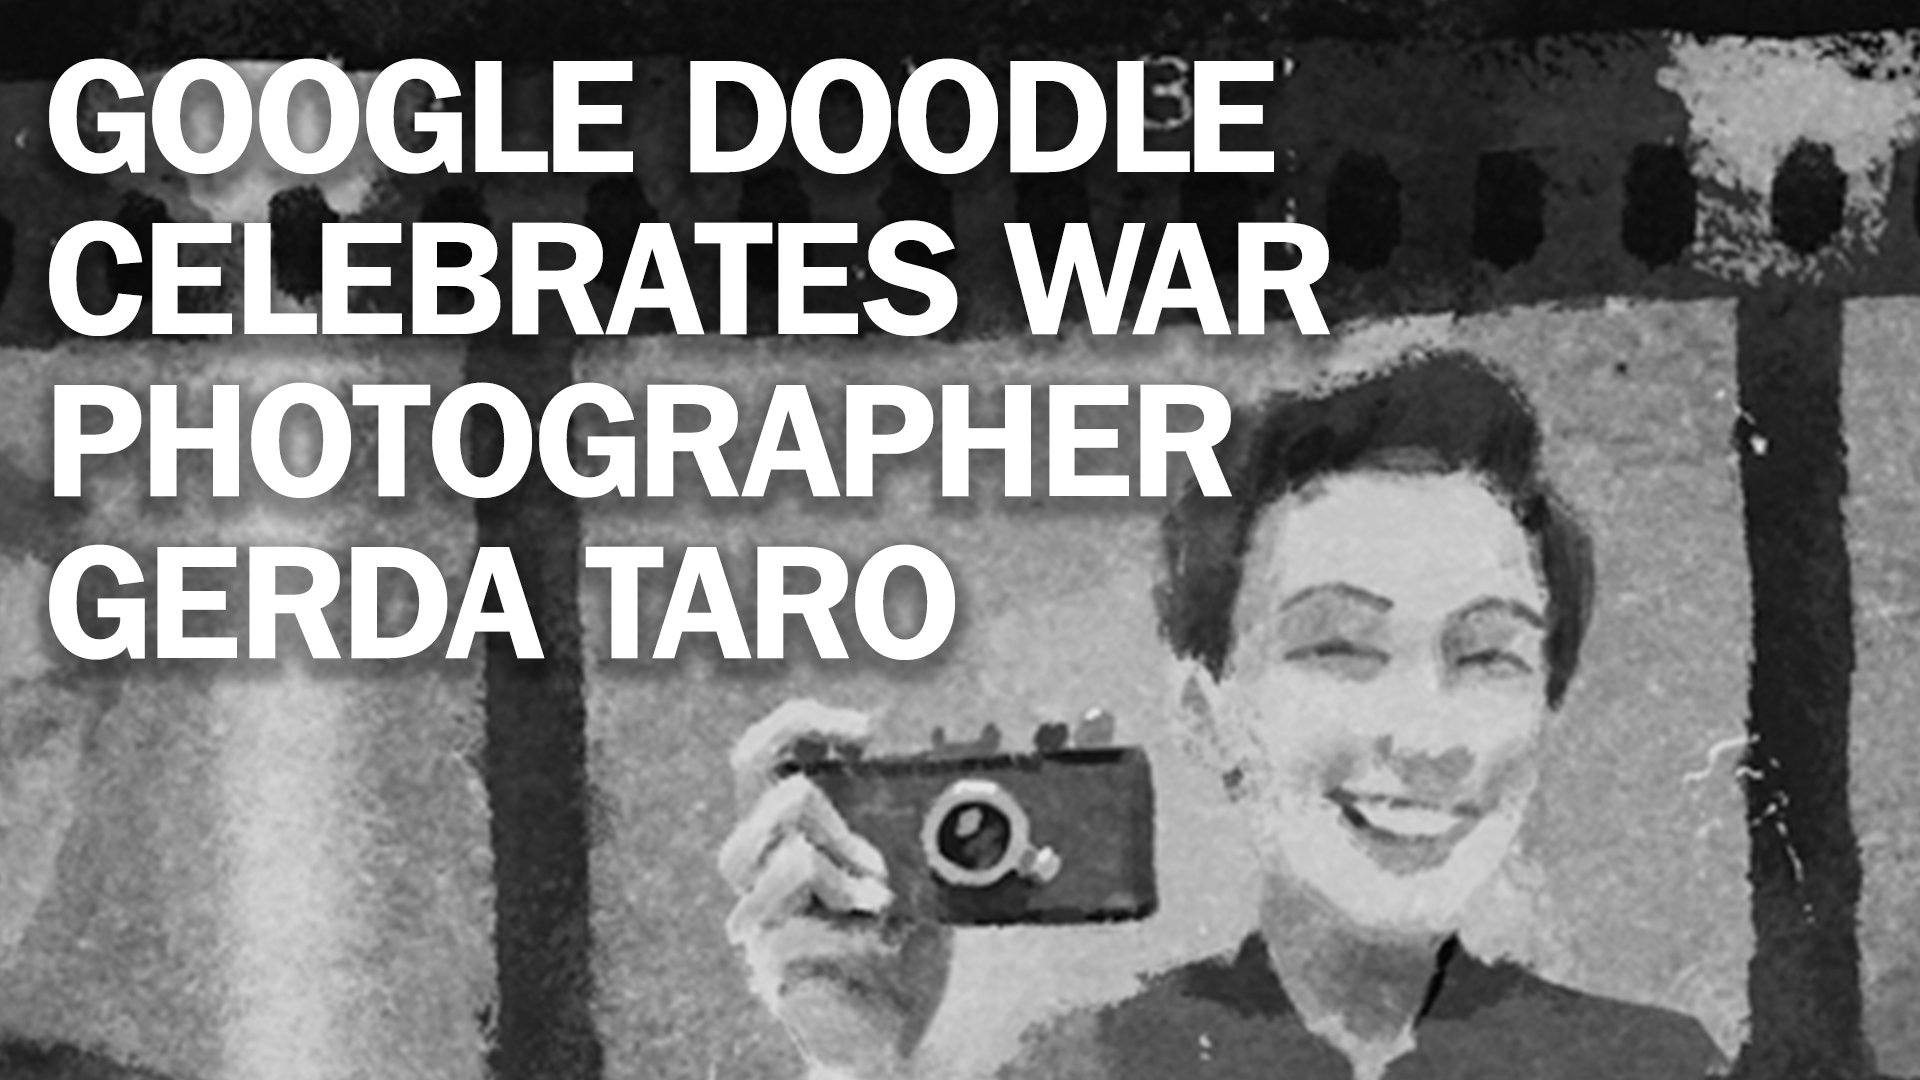 What to know about Gerda Taro, the war photographer celebrated by today's Google Doodle https://t.co/dQeigrkjy7 https://t.co/do7wotvLg8